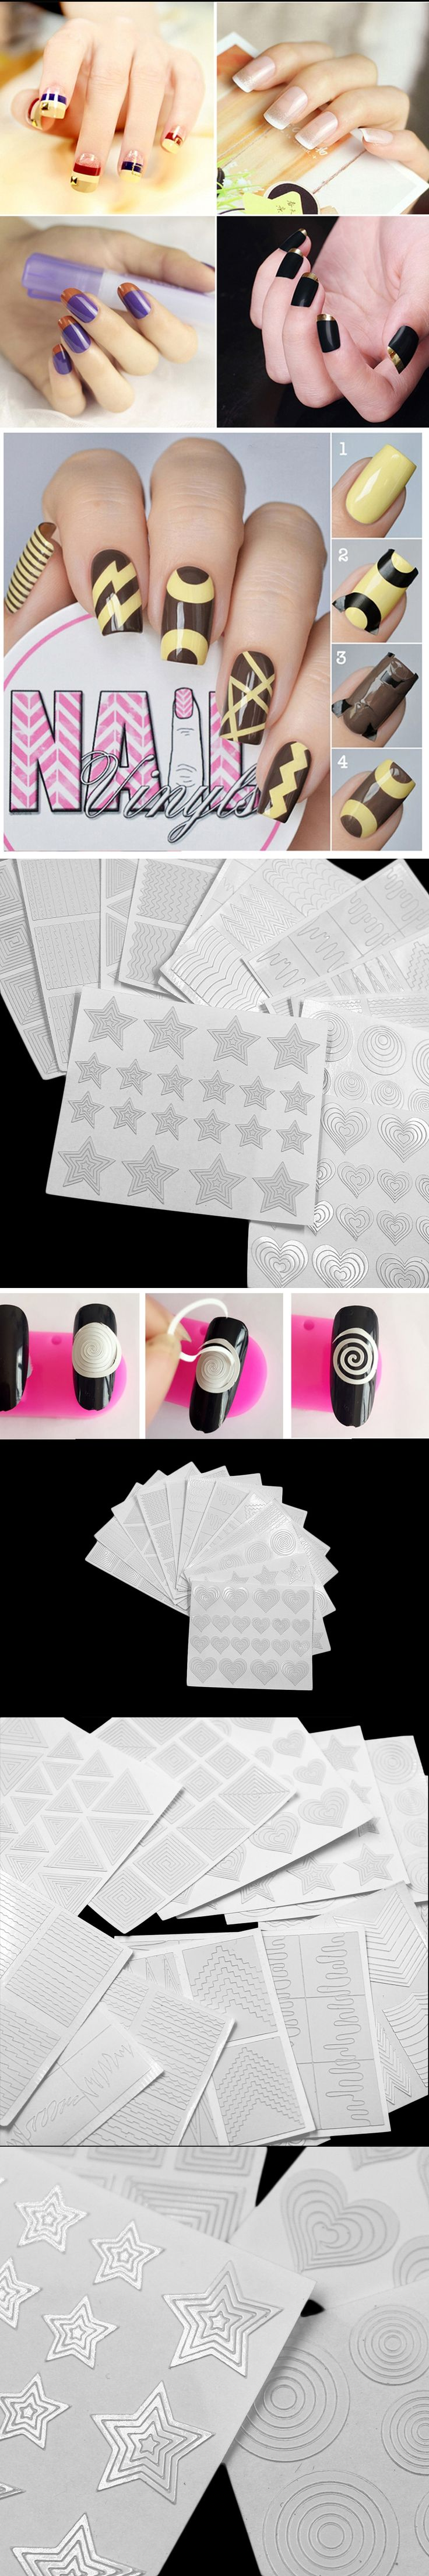 12pcs Nail Art Sticker Guide Hollow Tips Acrylic Crystal French Template 3D Stencil Line Decals Form Styling Manicure Tool